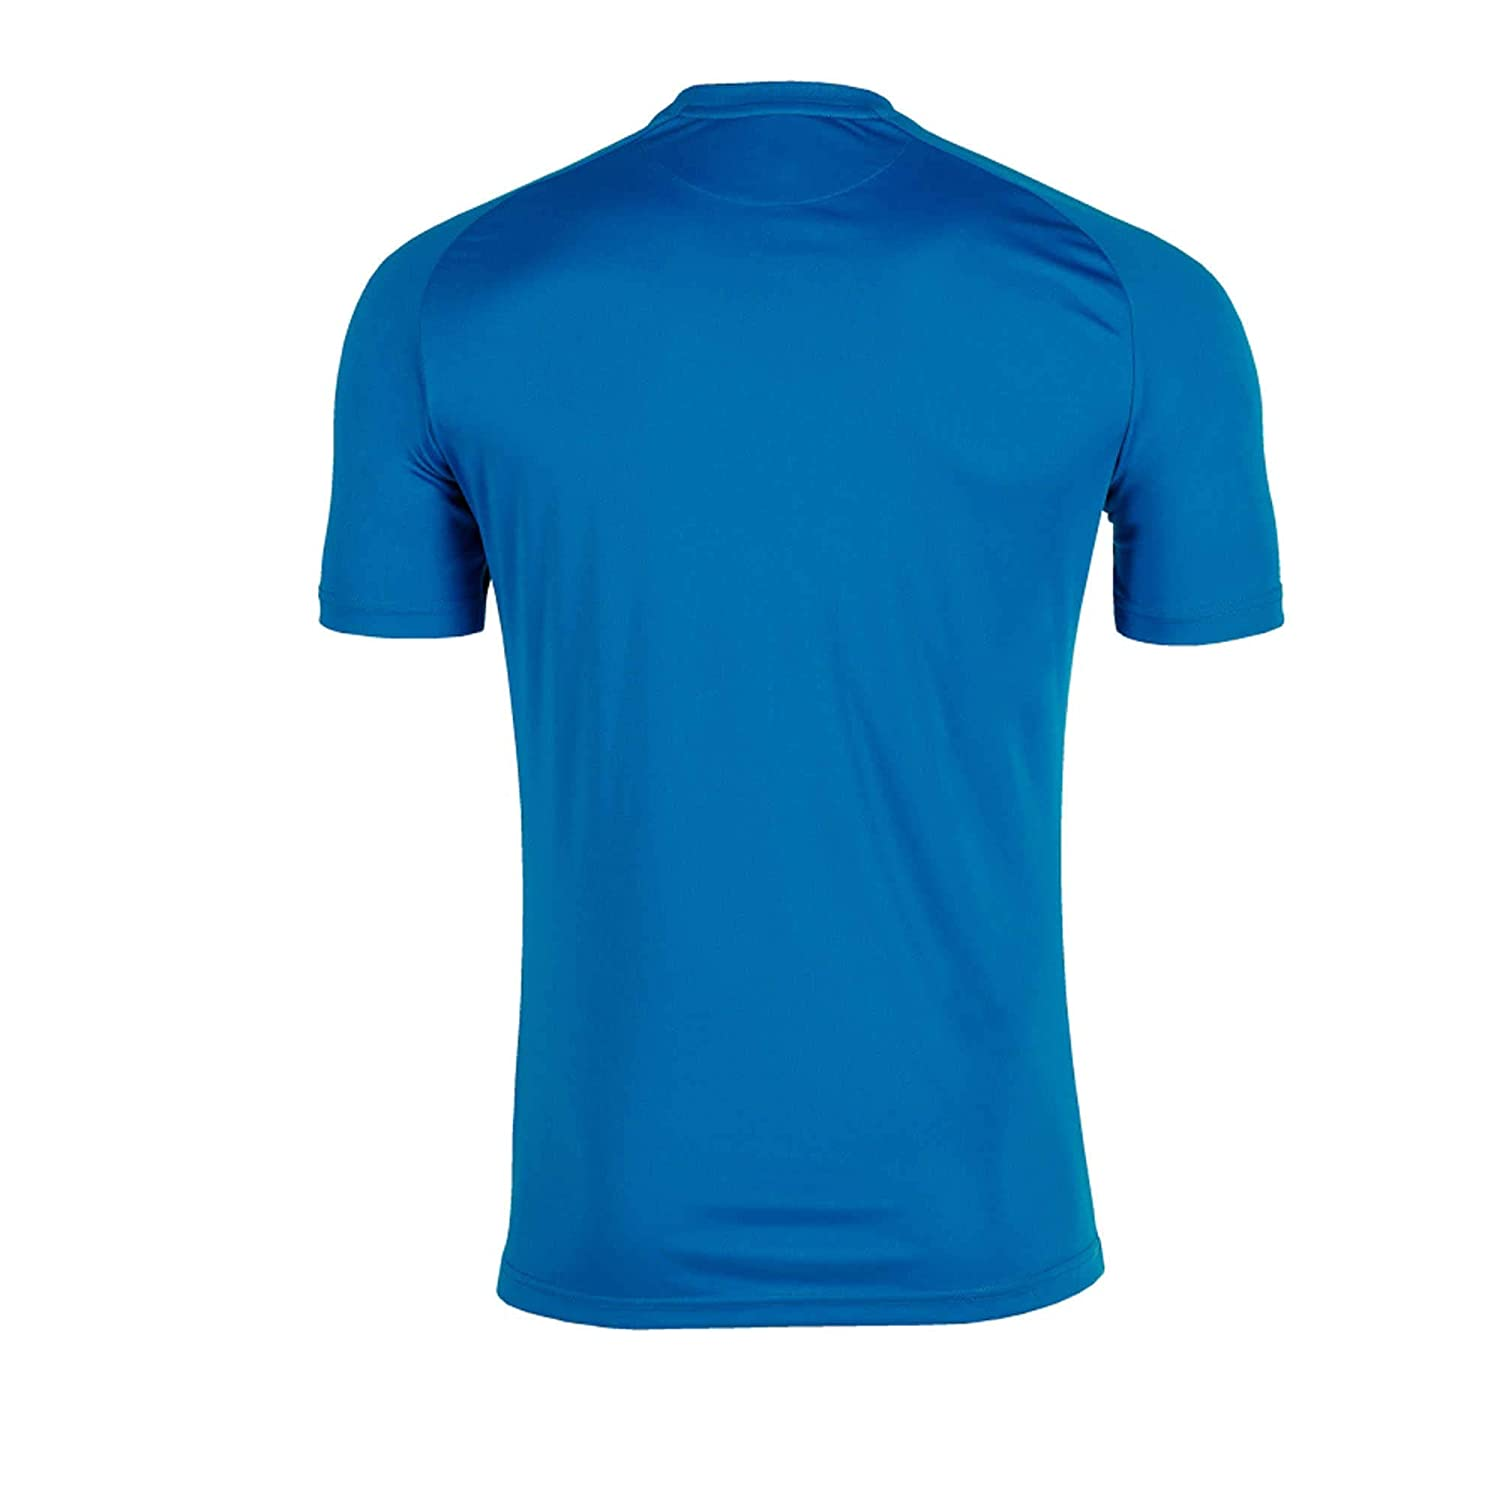 KiarenzaFD Joma Camiseta Tiger M/C Royal Fútbol Fashion Camiseta ...